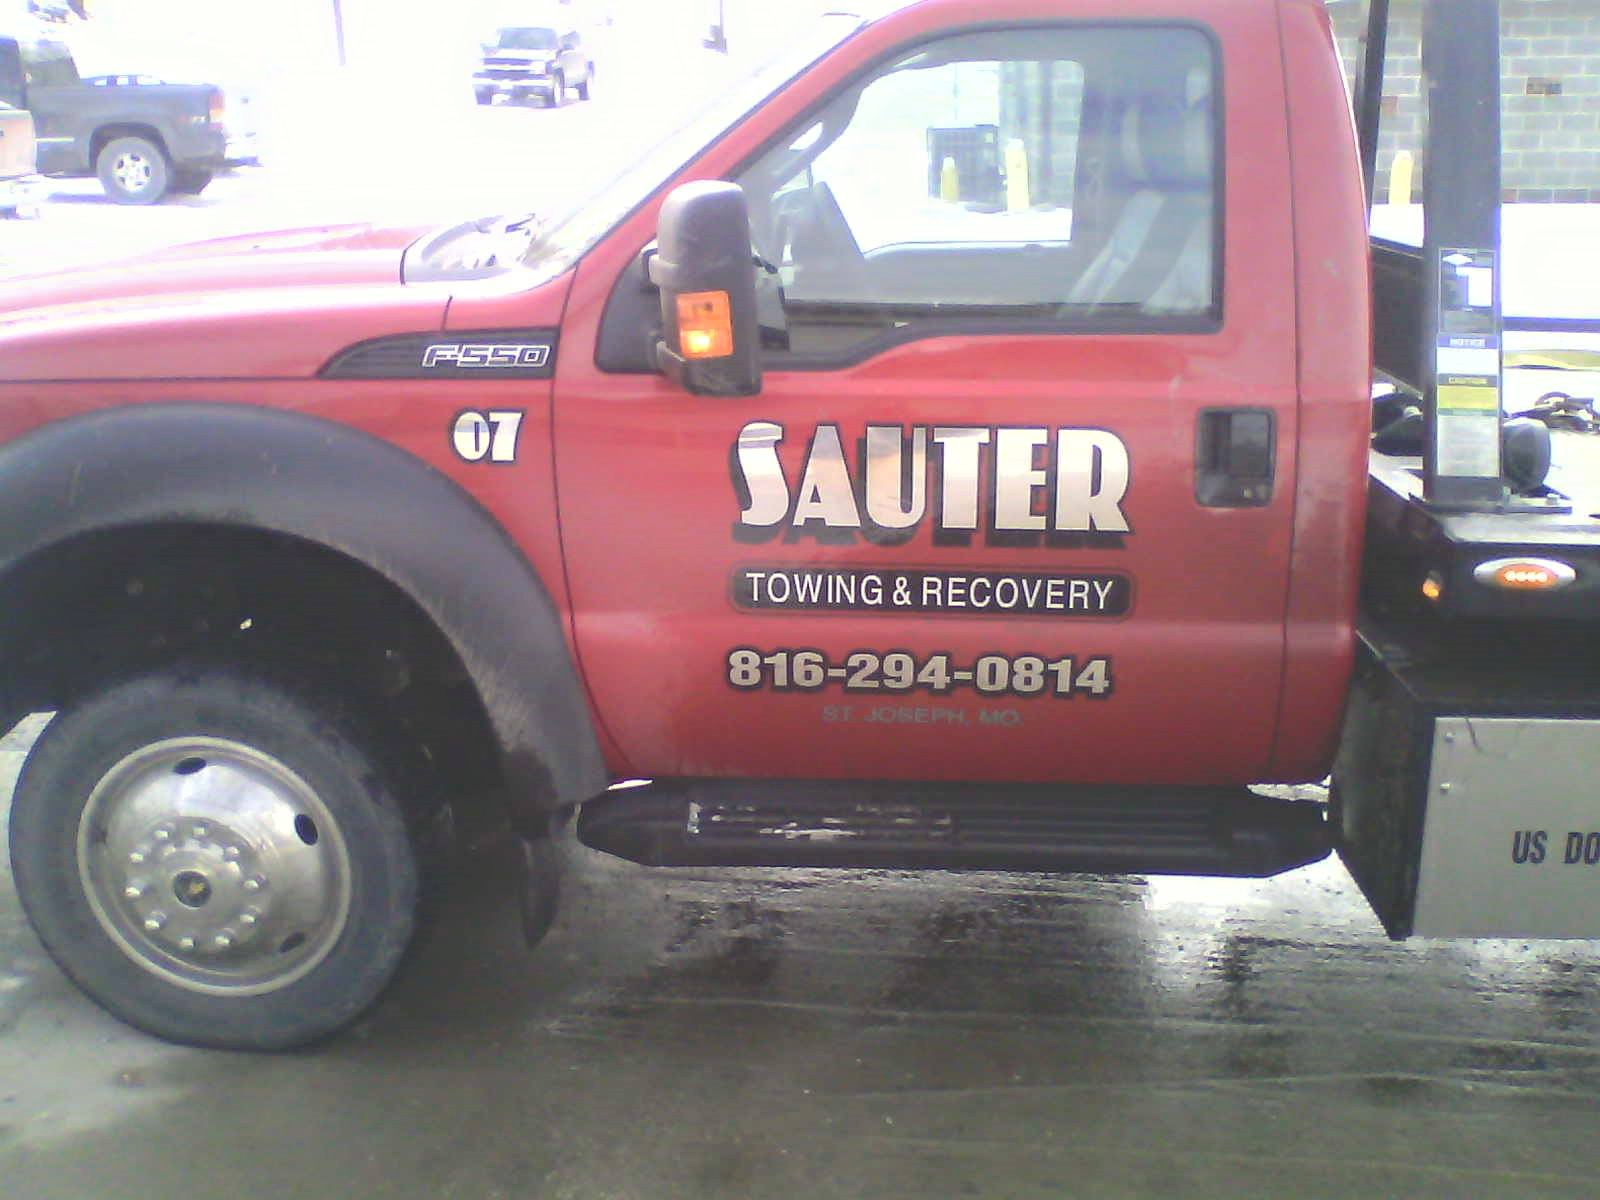 Sauters Towing